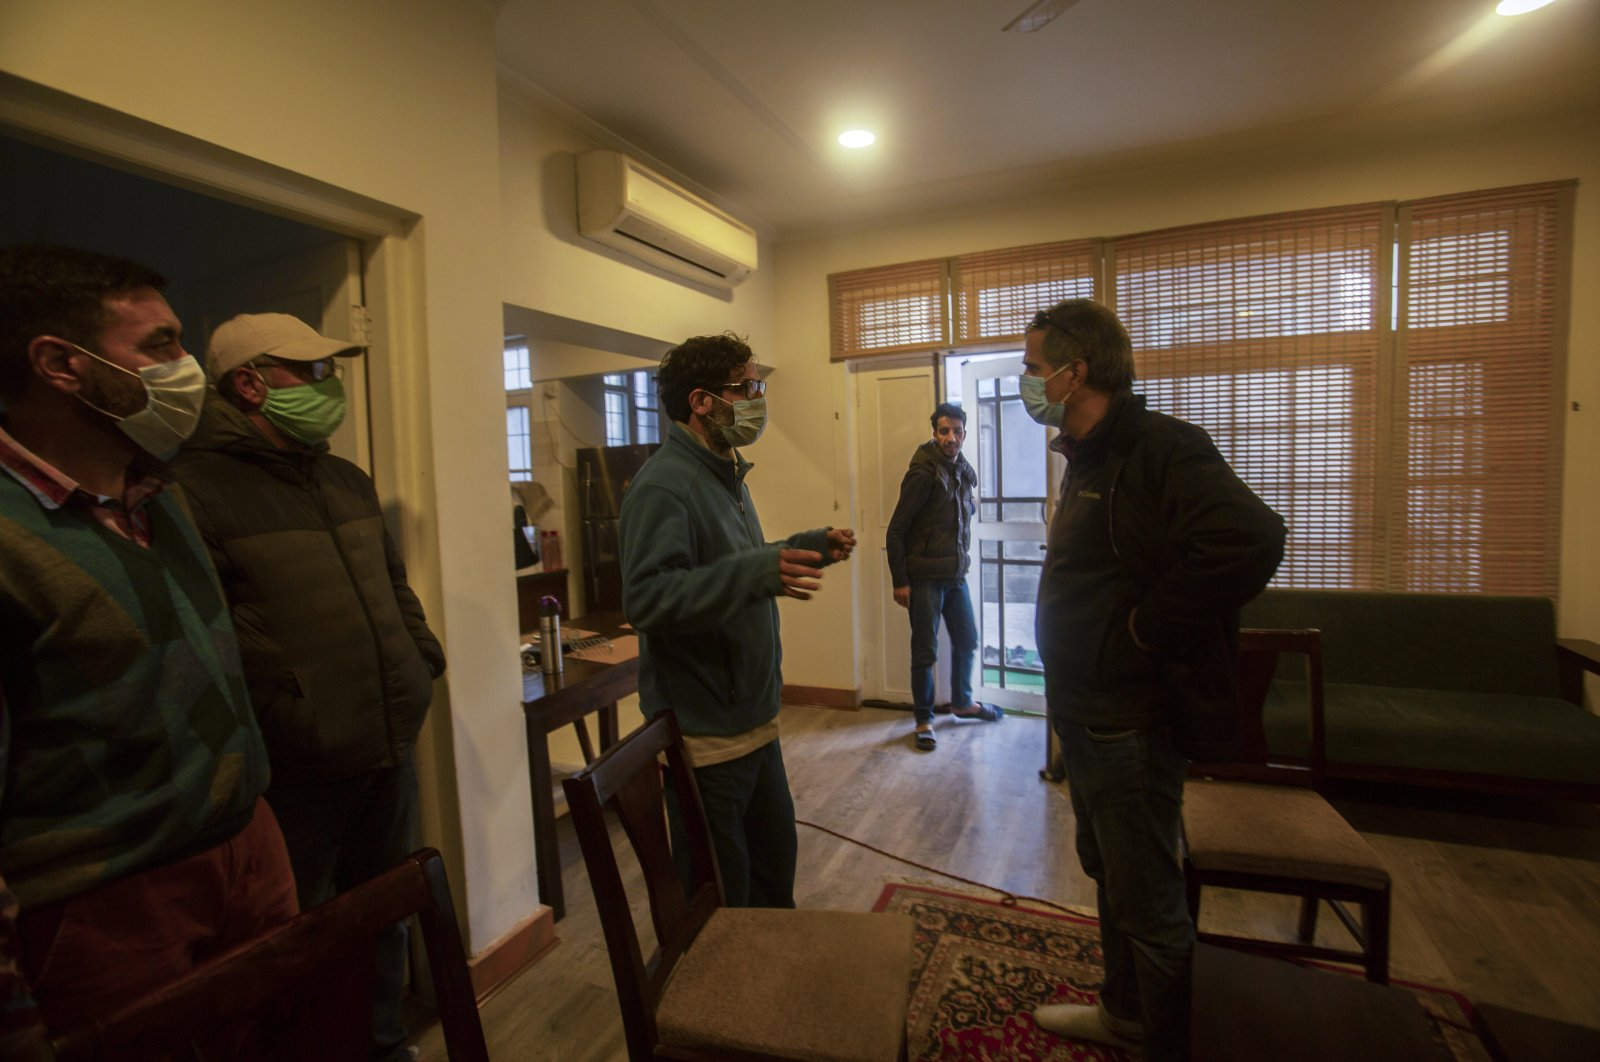 Agence France-Presse's Kashmir correspondent Parvaiz Bukhari (C), talks to his colleagues after National Investigation Agency personnel searched his premises on the outskirts of Srinagar, Indian controlled Kashmir, Oct. 28, 2020. (AP Photo)